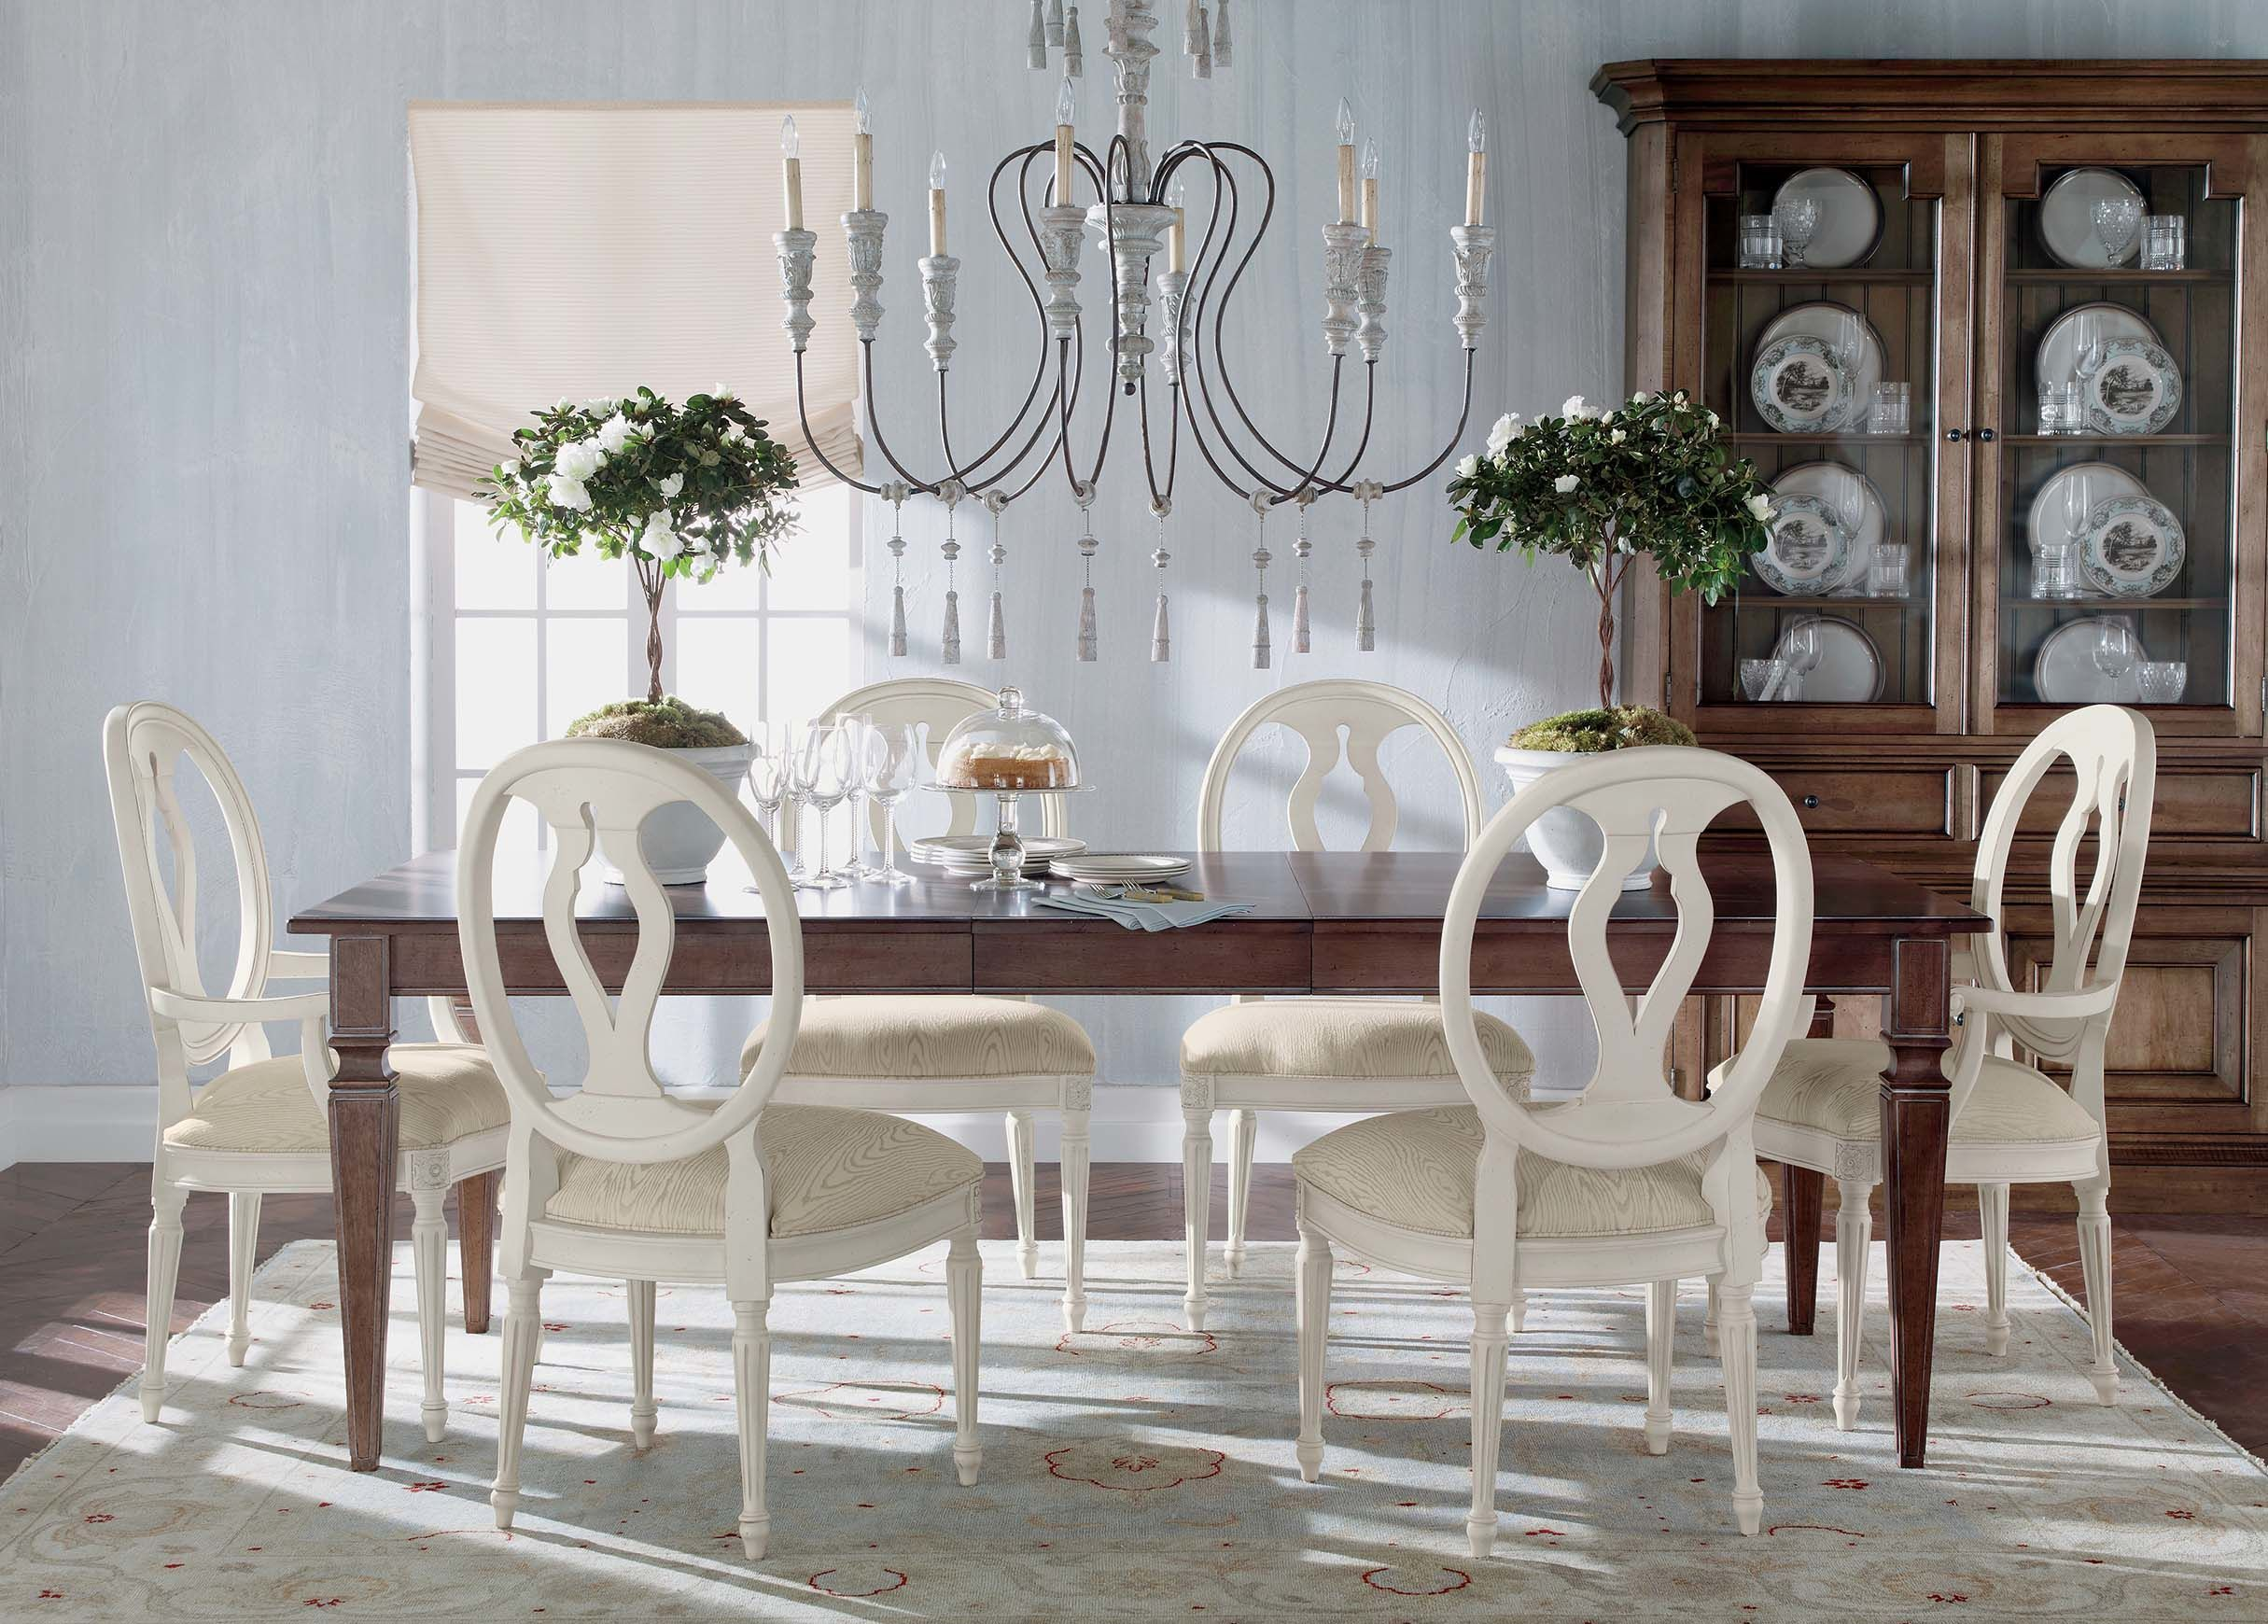 this table and chairs is nice avery large extension dining table